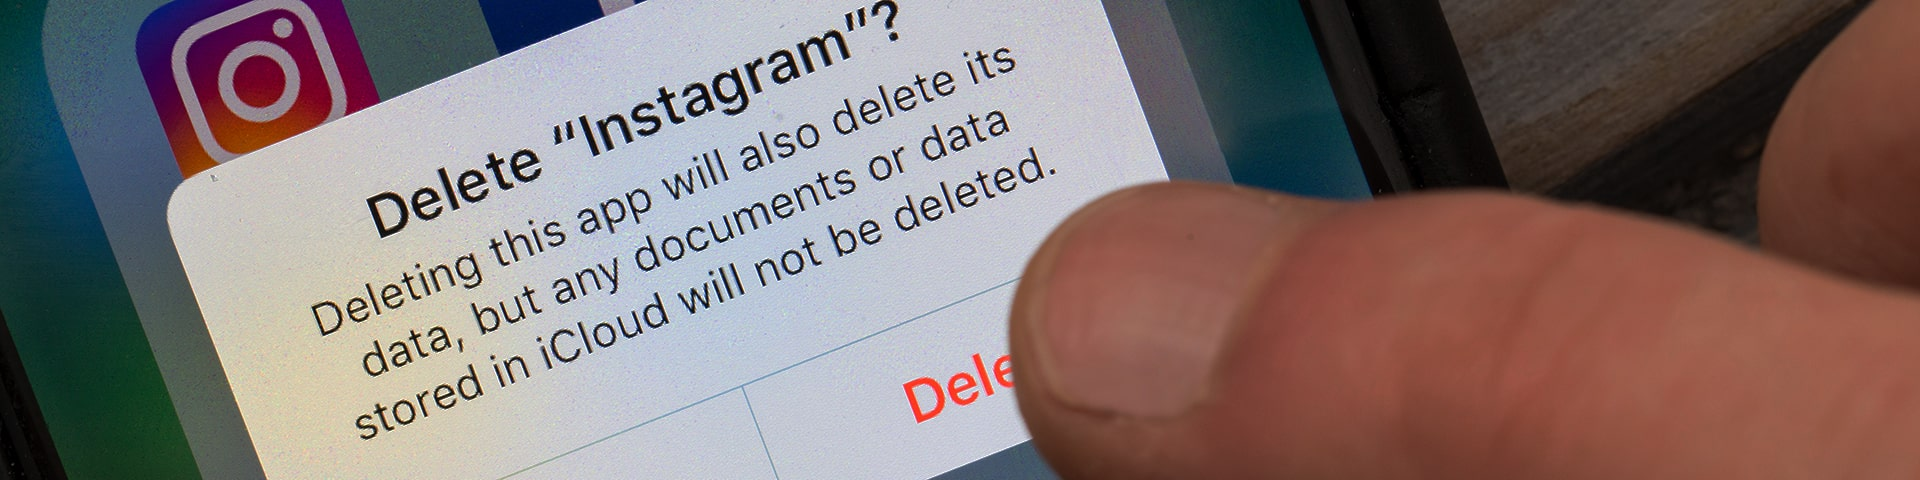 How to Delete or Deactivate Instagram Account: Break Free From Social Media